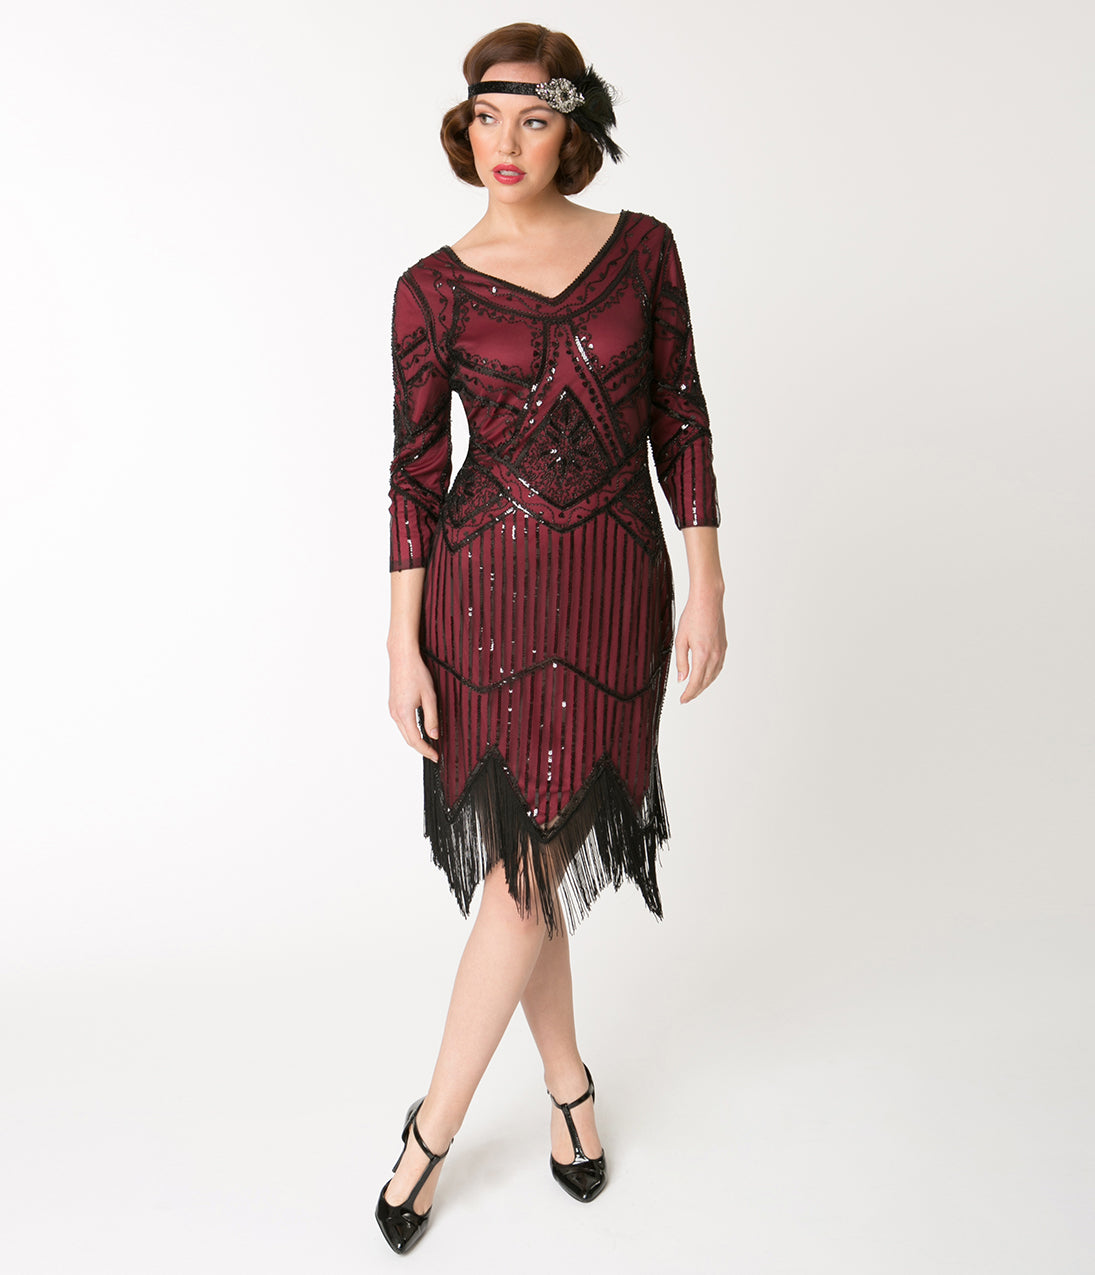 Vintage Evening Dresses and Formal Evening Gowns Unique Vintage 1920S Burgundy Beaded Sleeved Noemie Fringe Flapper Dress $59.00 AT vintagedancer.com